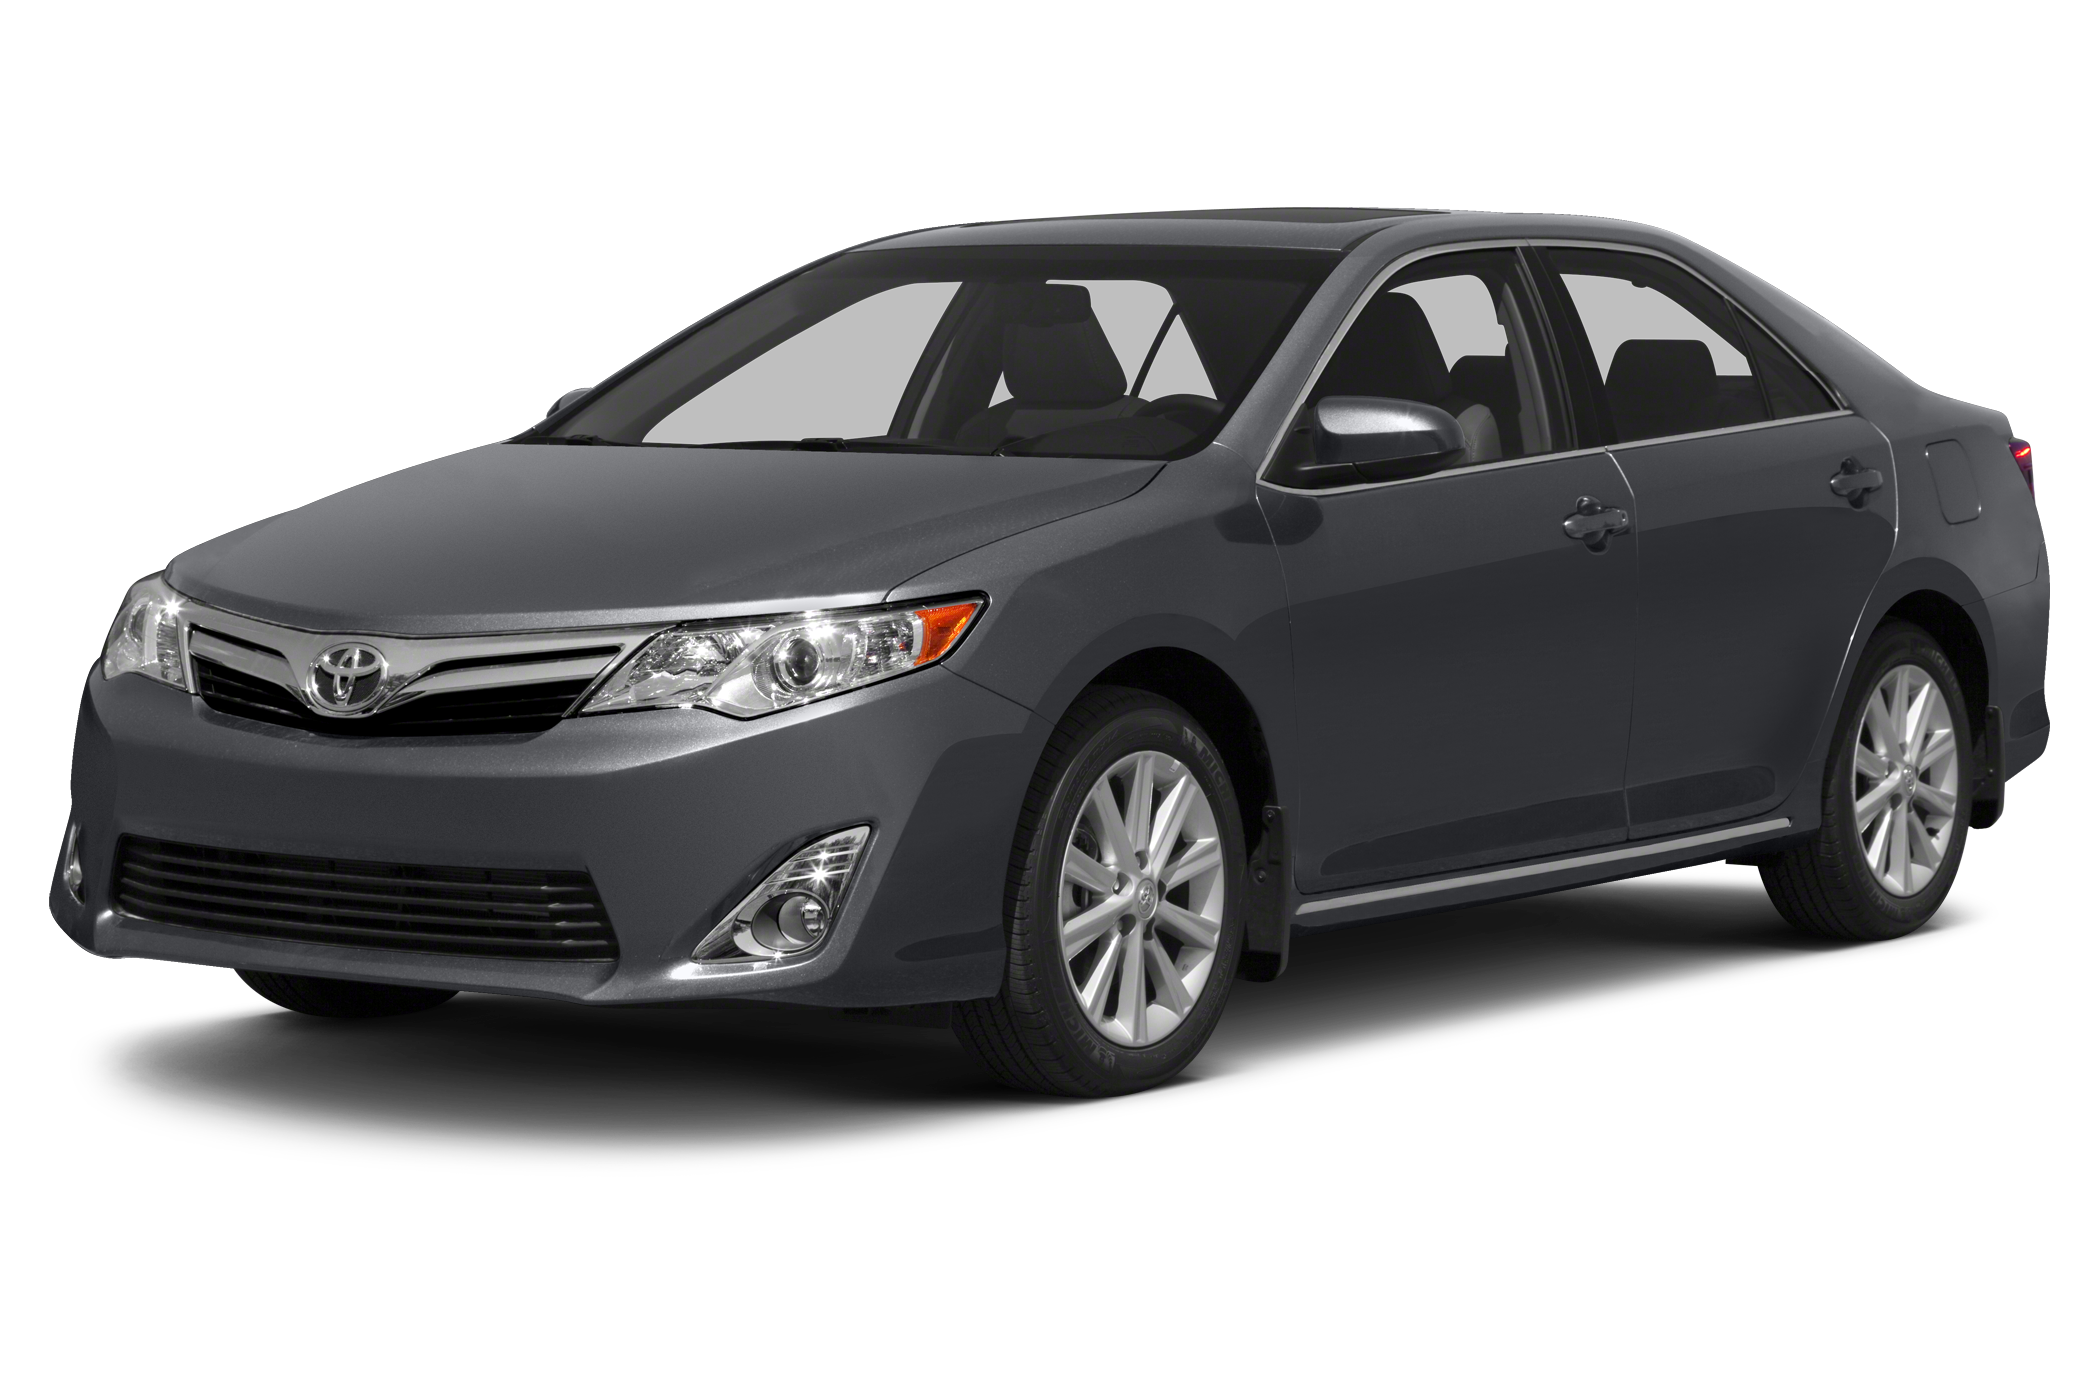 Toyota Camry Se 2014 Price ~ 2014 Toyota Camry Sedan Pricing Features